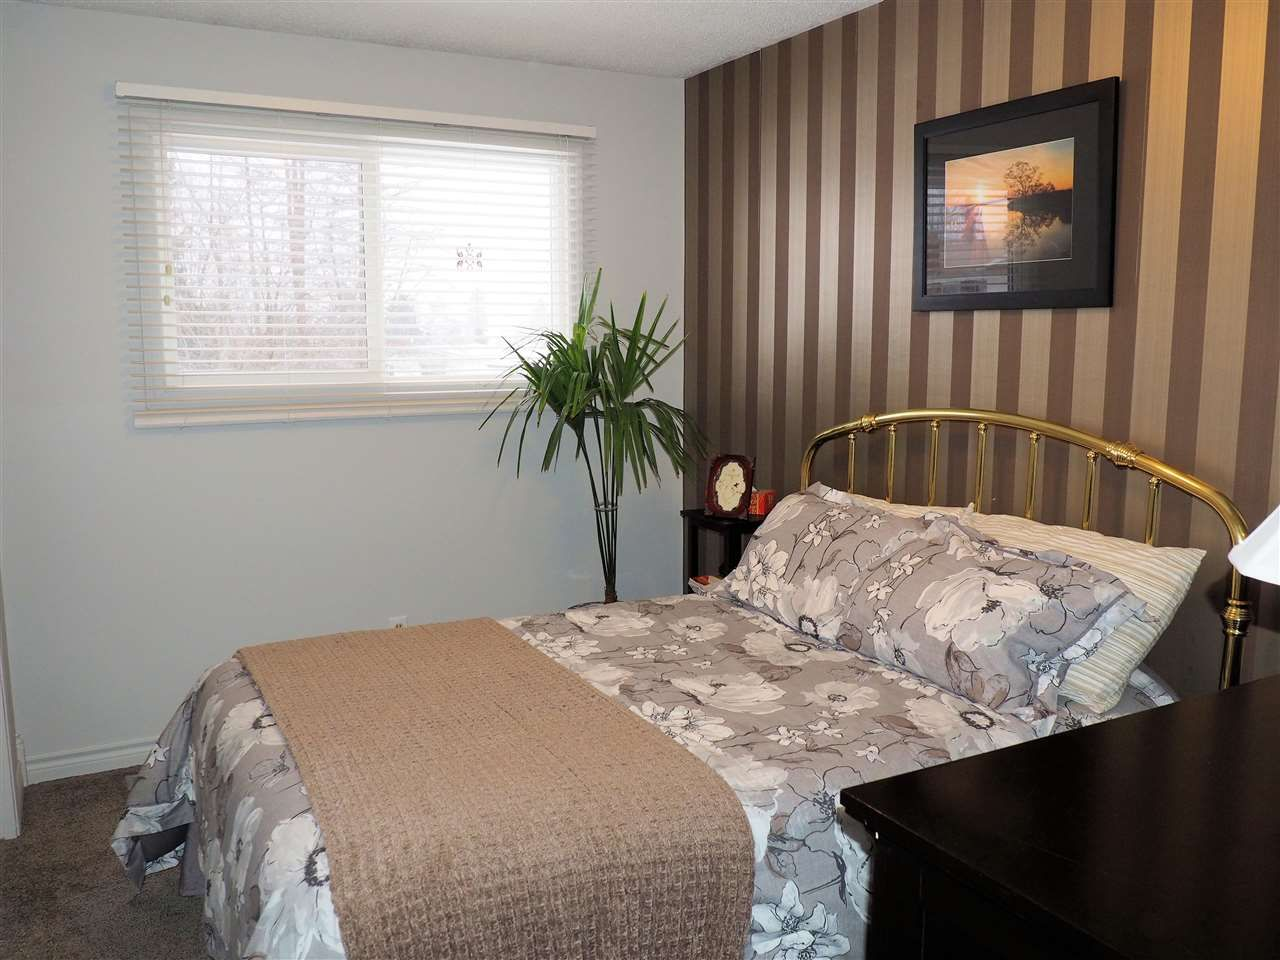 Photo 8: Photos: 4645 ROBSON Avenue in Prince George: Foothills House for sale (PG City West (Zone 71))  : MLS®# R2143048